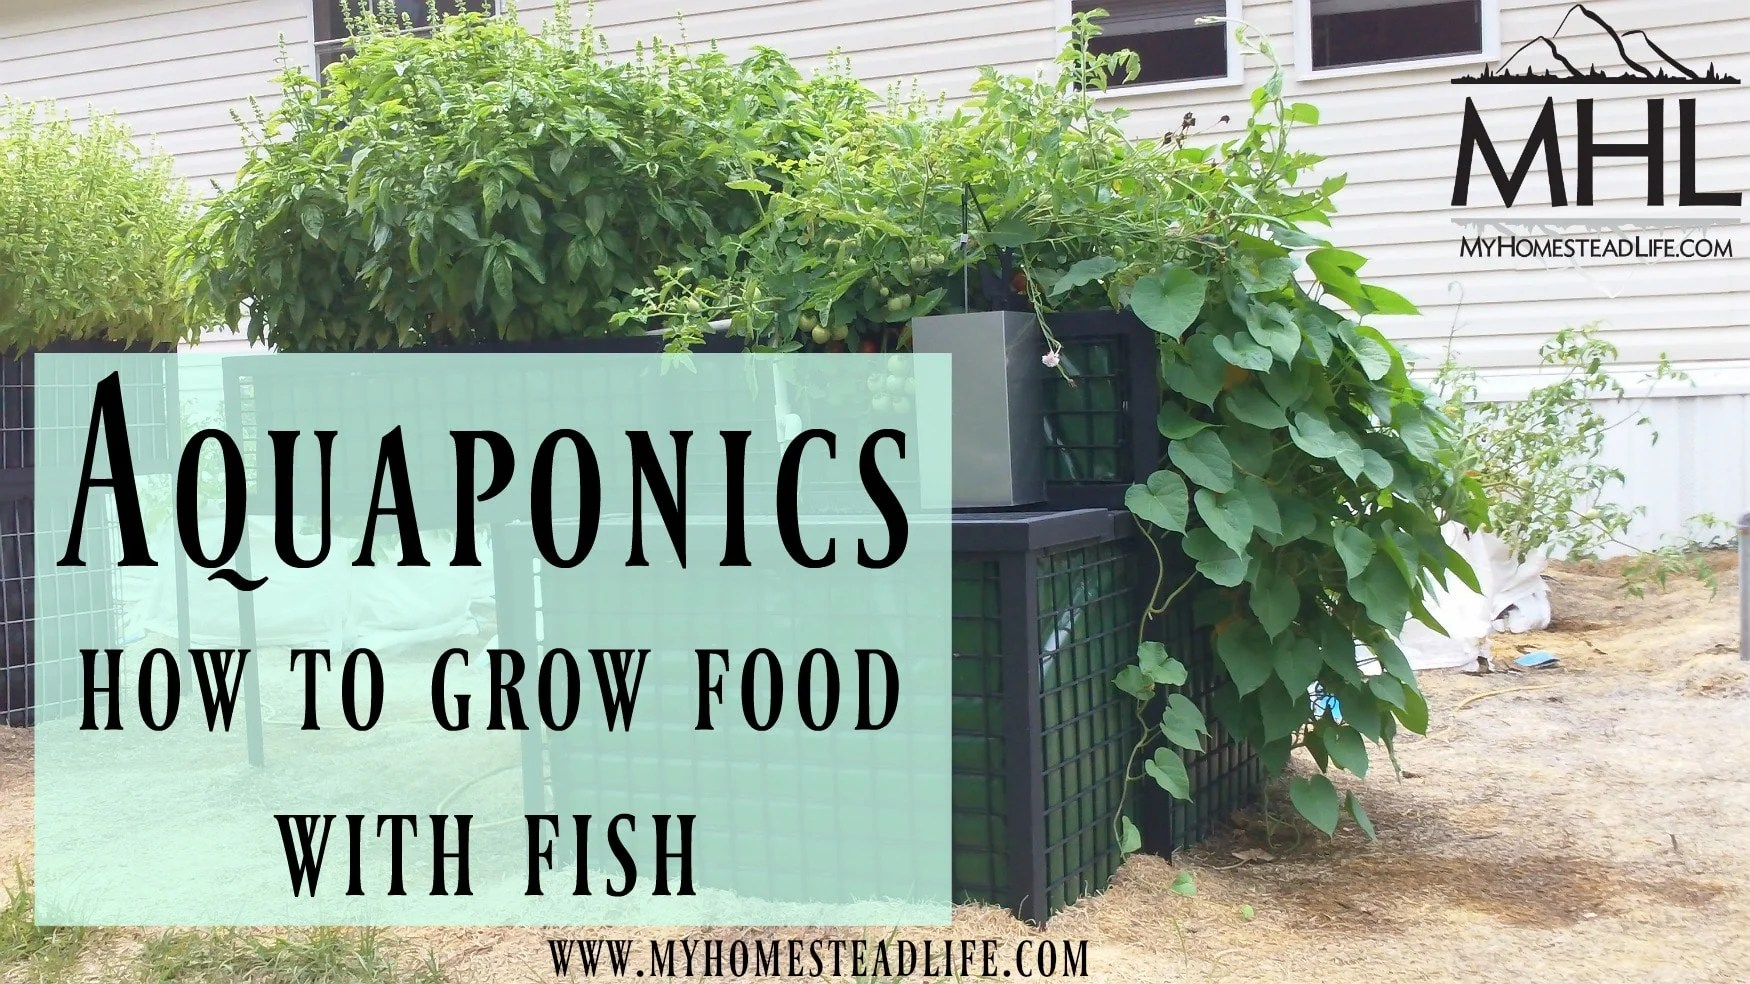 Aquaponics- How to Grow Food With Fish - My Homestead Life